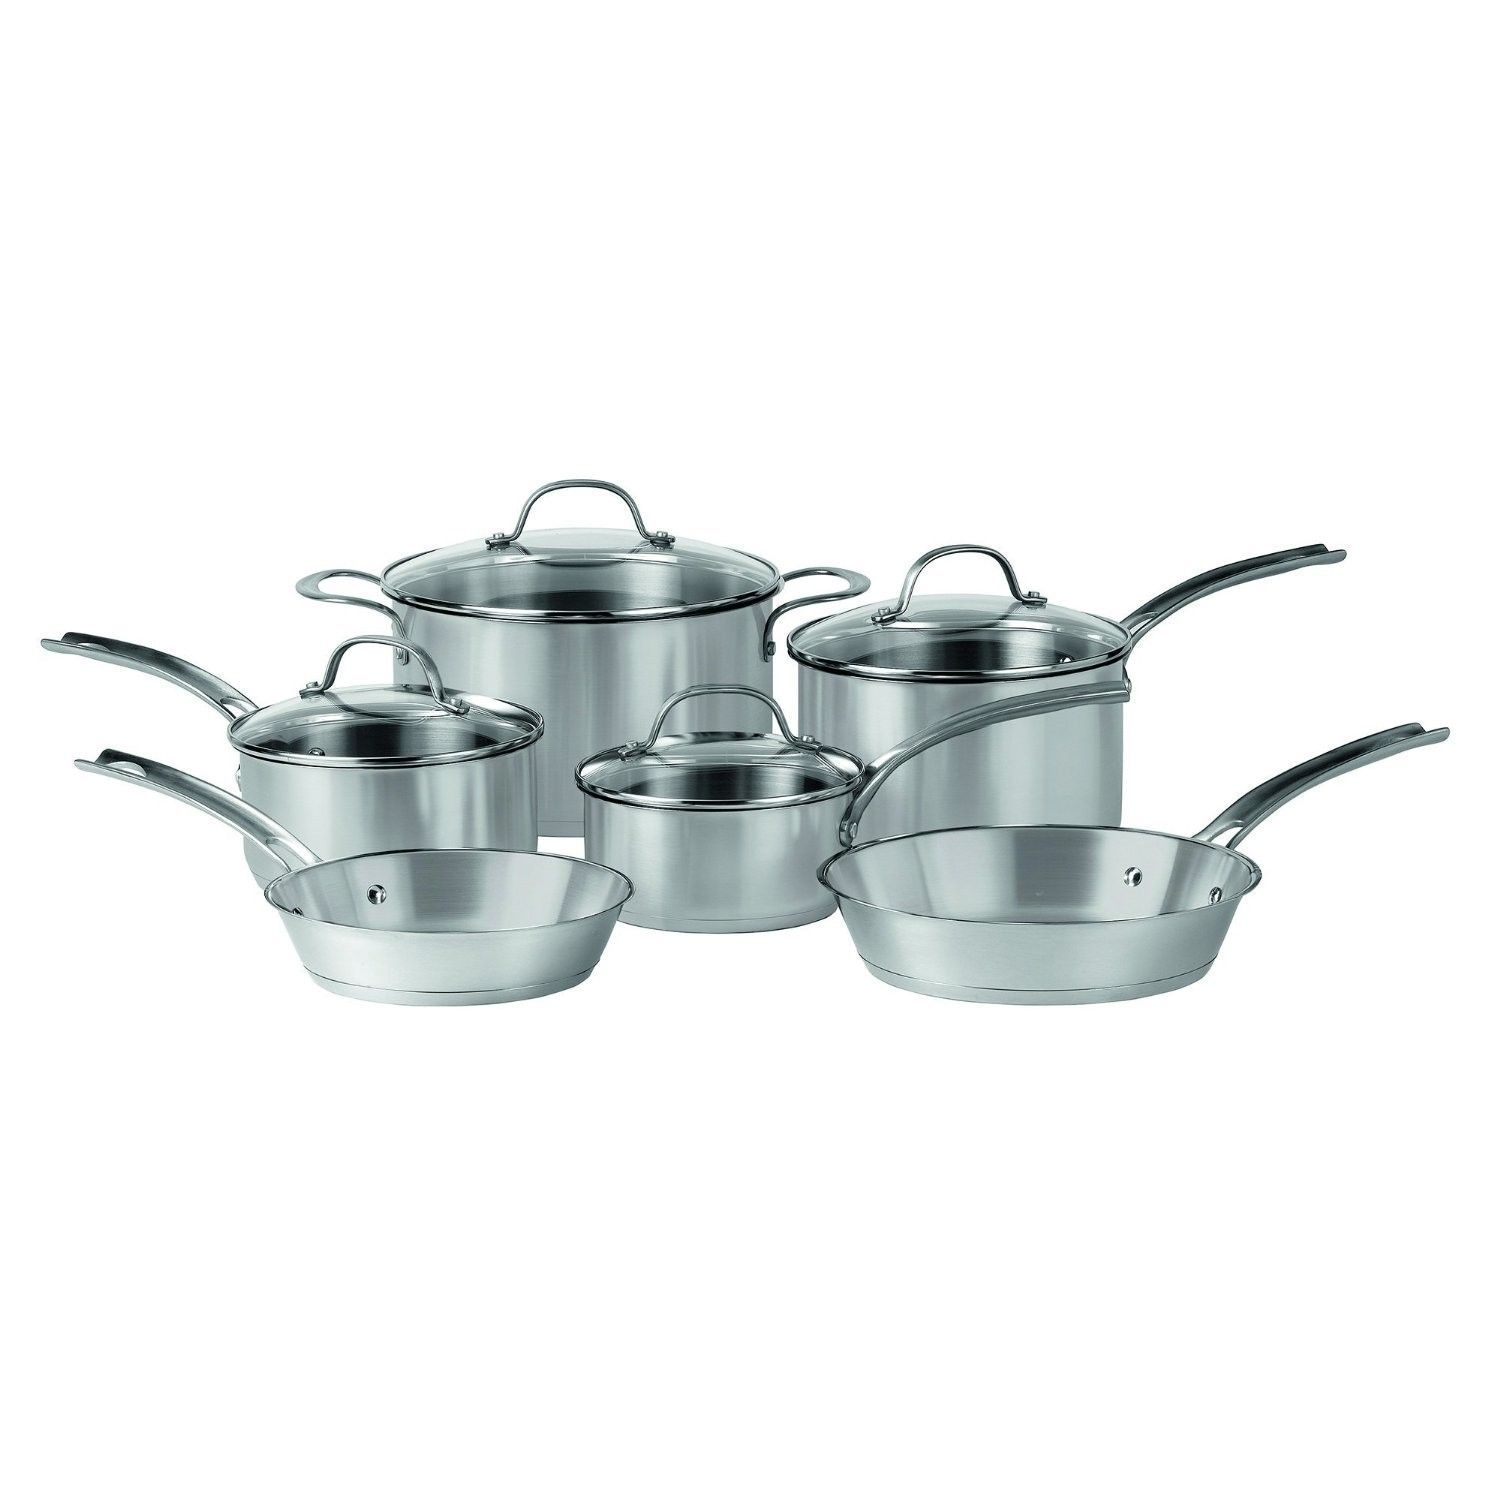 Induction 10-Piece Cookware Set   Cookware set, Cookware and Products